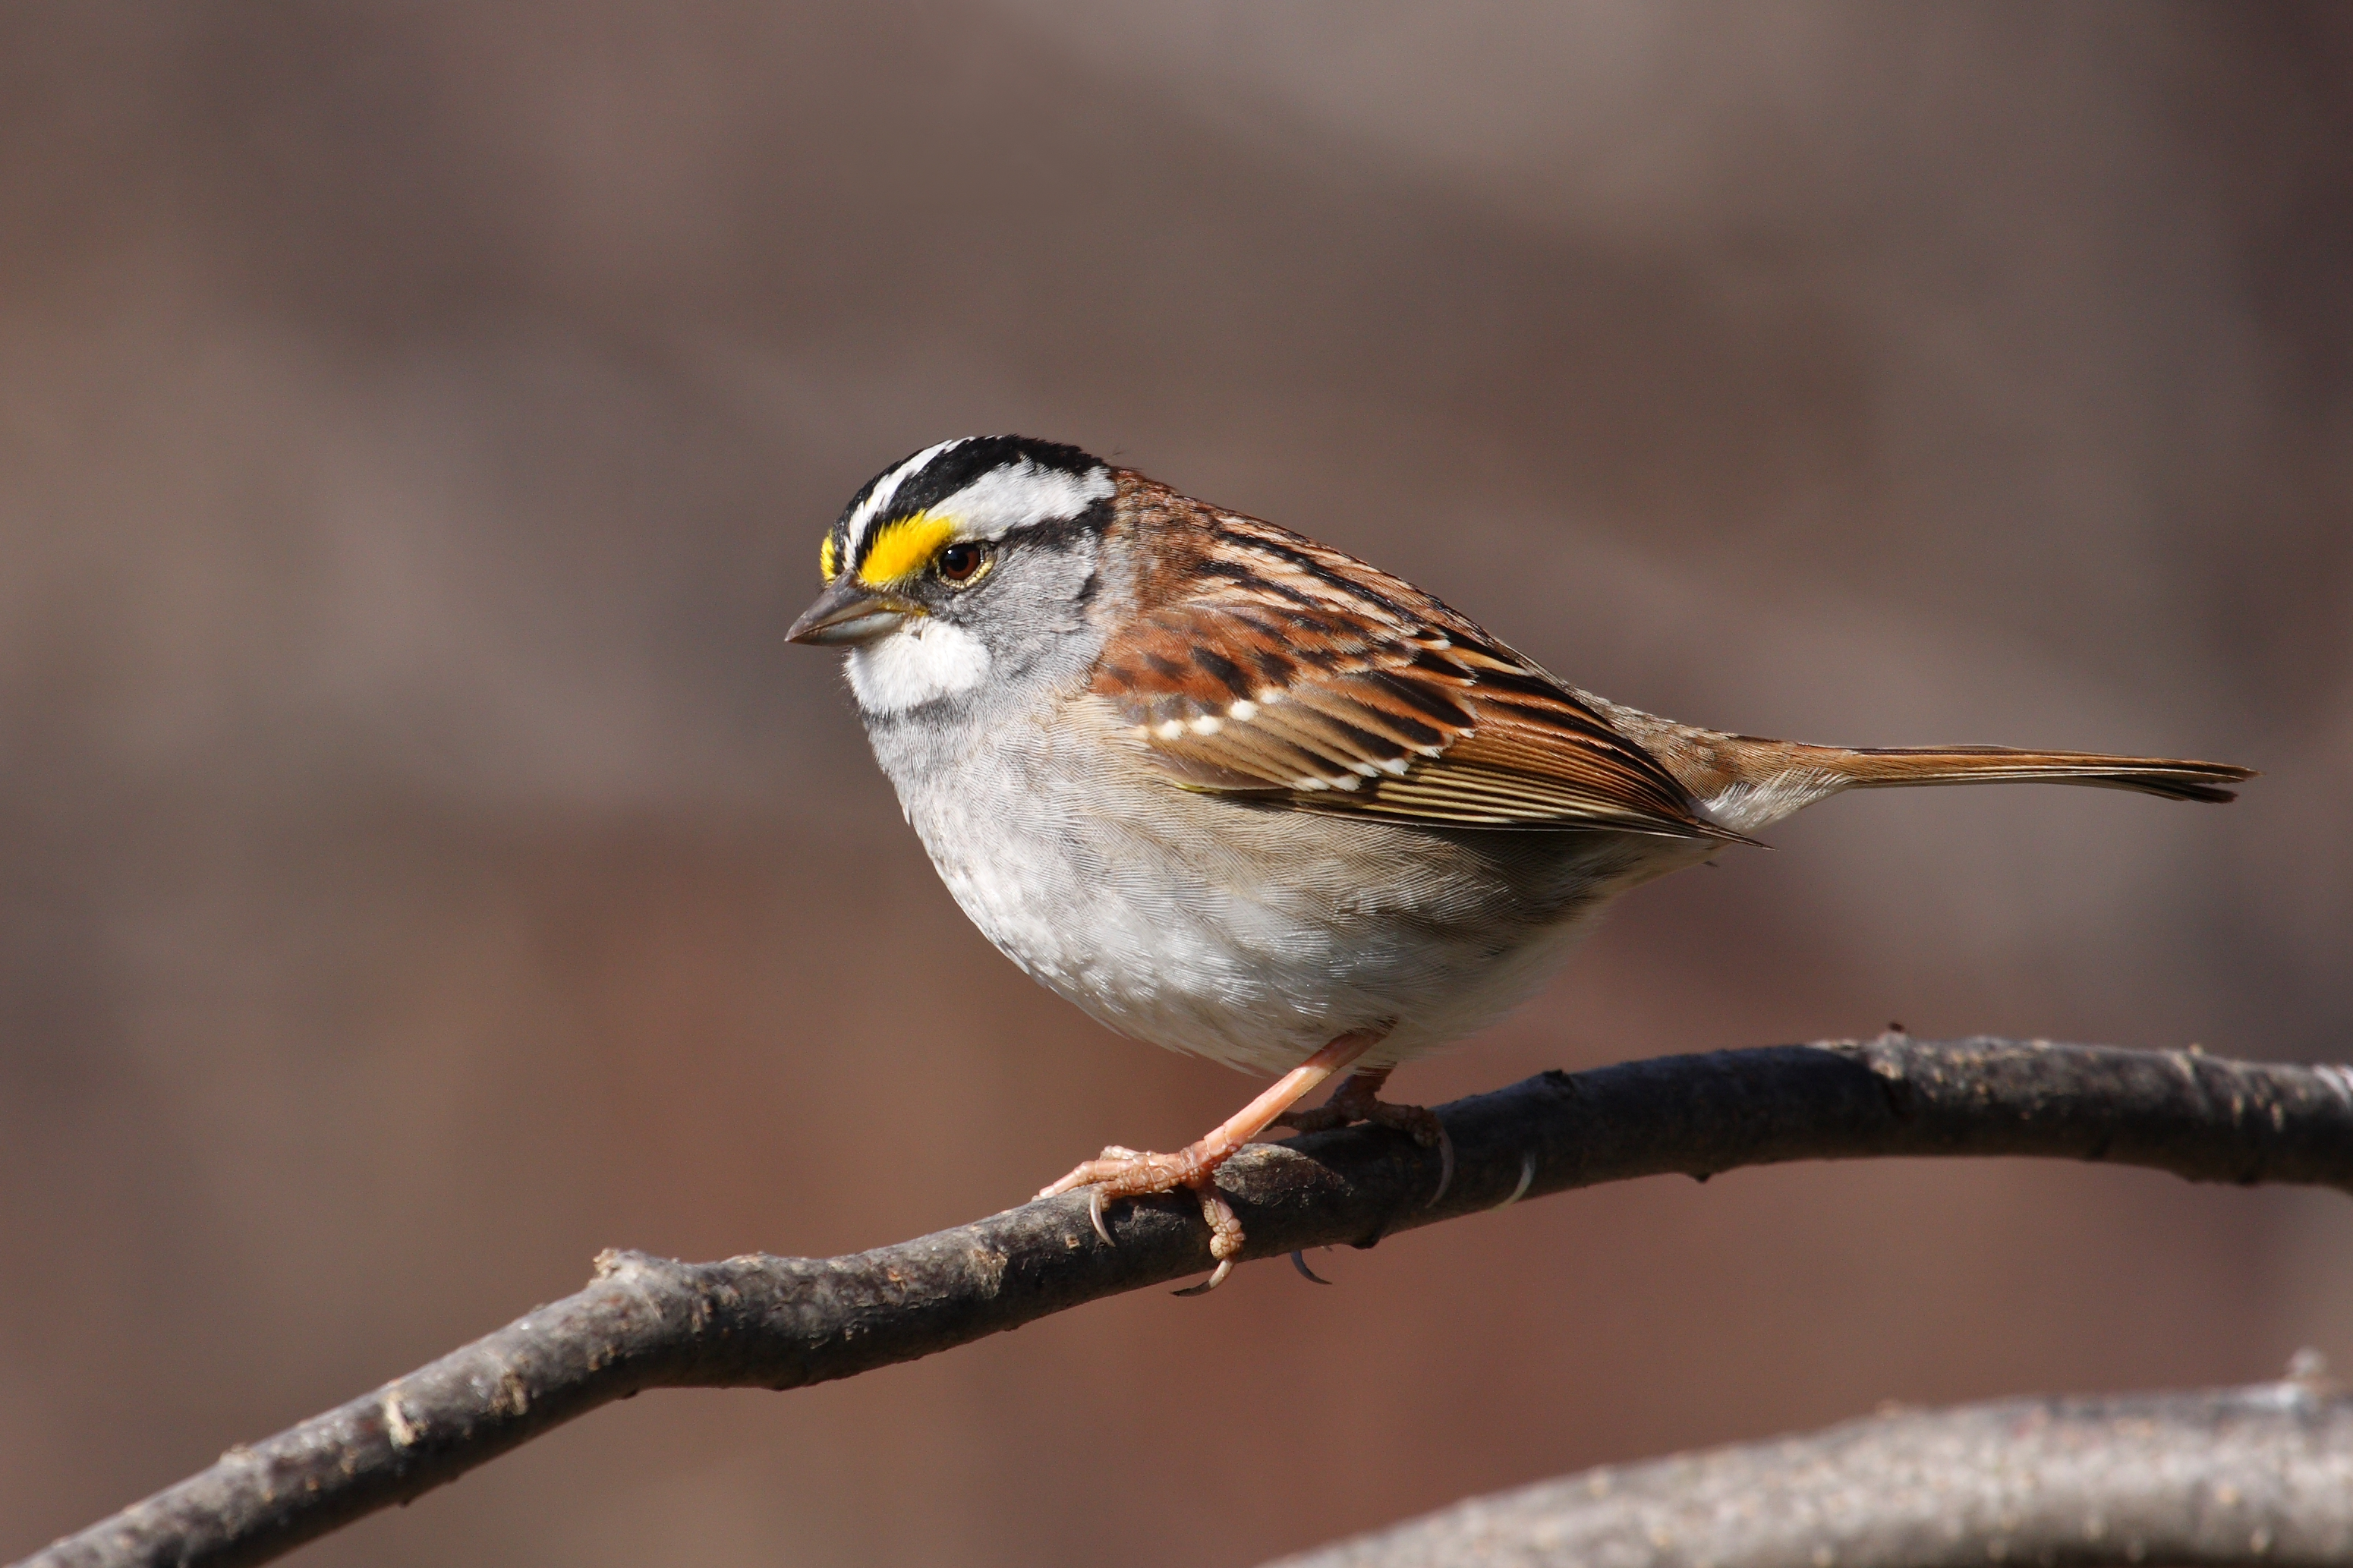 Stout brownish gray bird with a striped head and boldly colored patch between its eye and bill perched on a tree branch